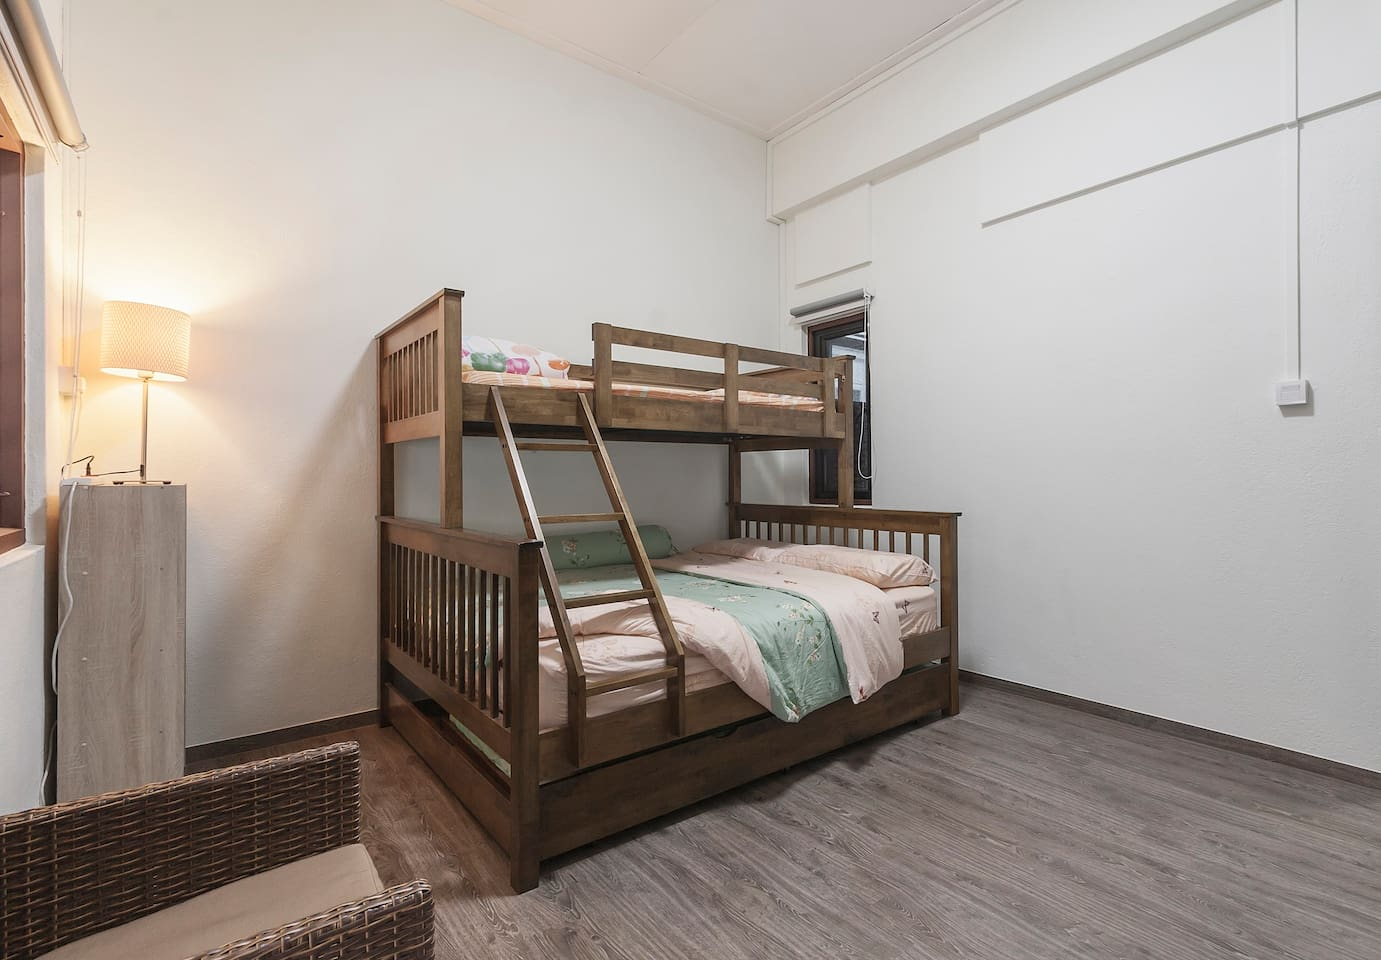 spacious room with a cool bed for 4 person